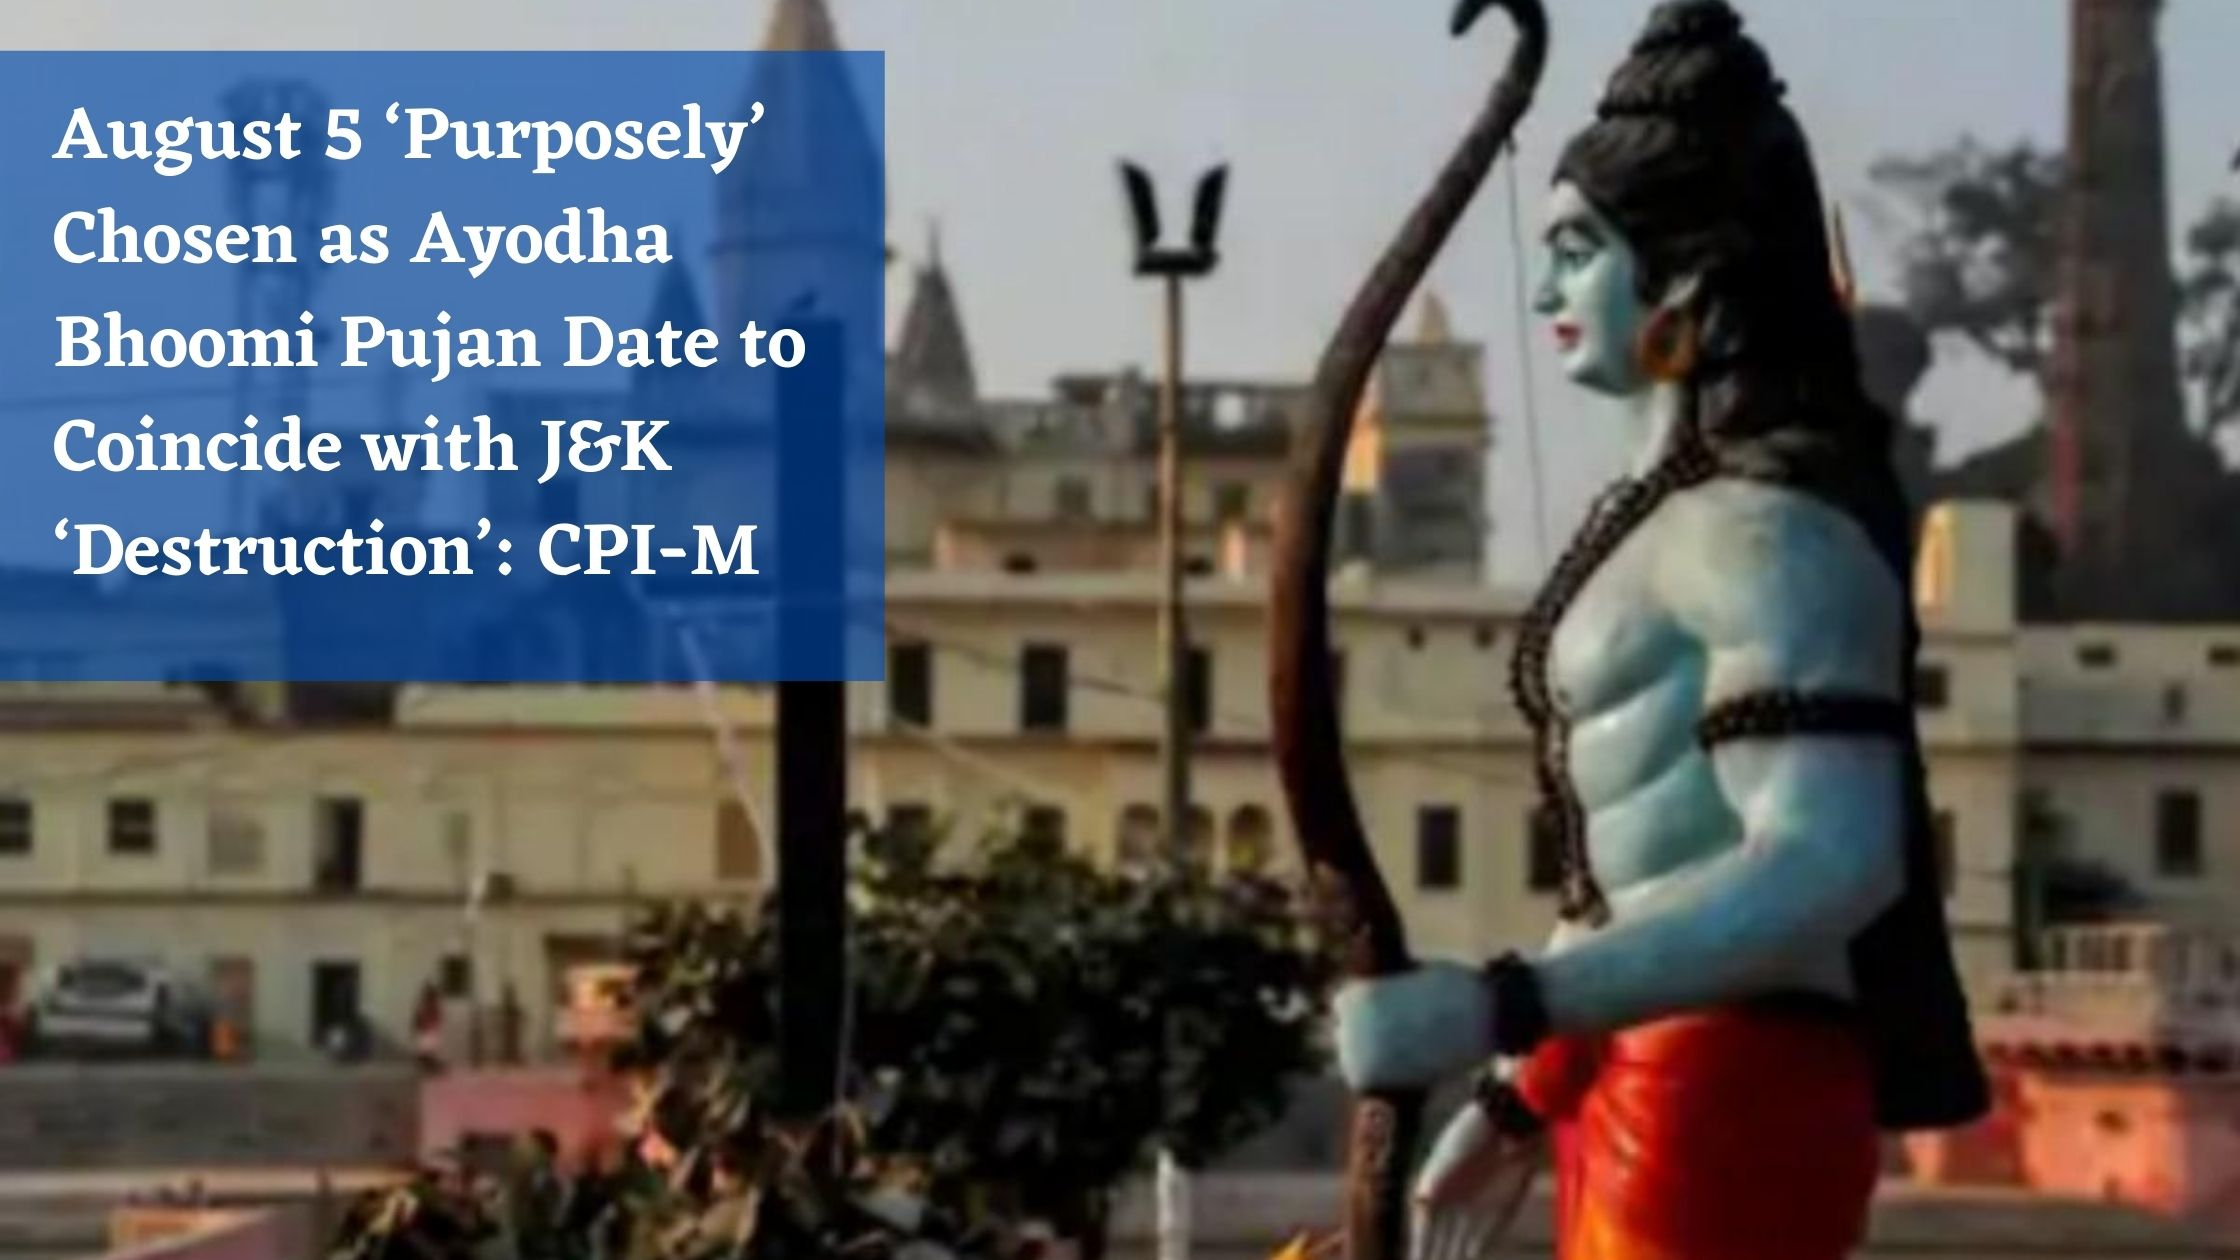 August 5 'Purposely' Chosen as Ayodha Bhoomi Pujan Date